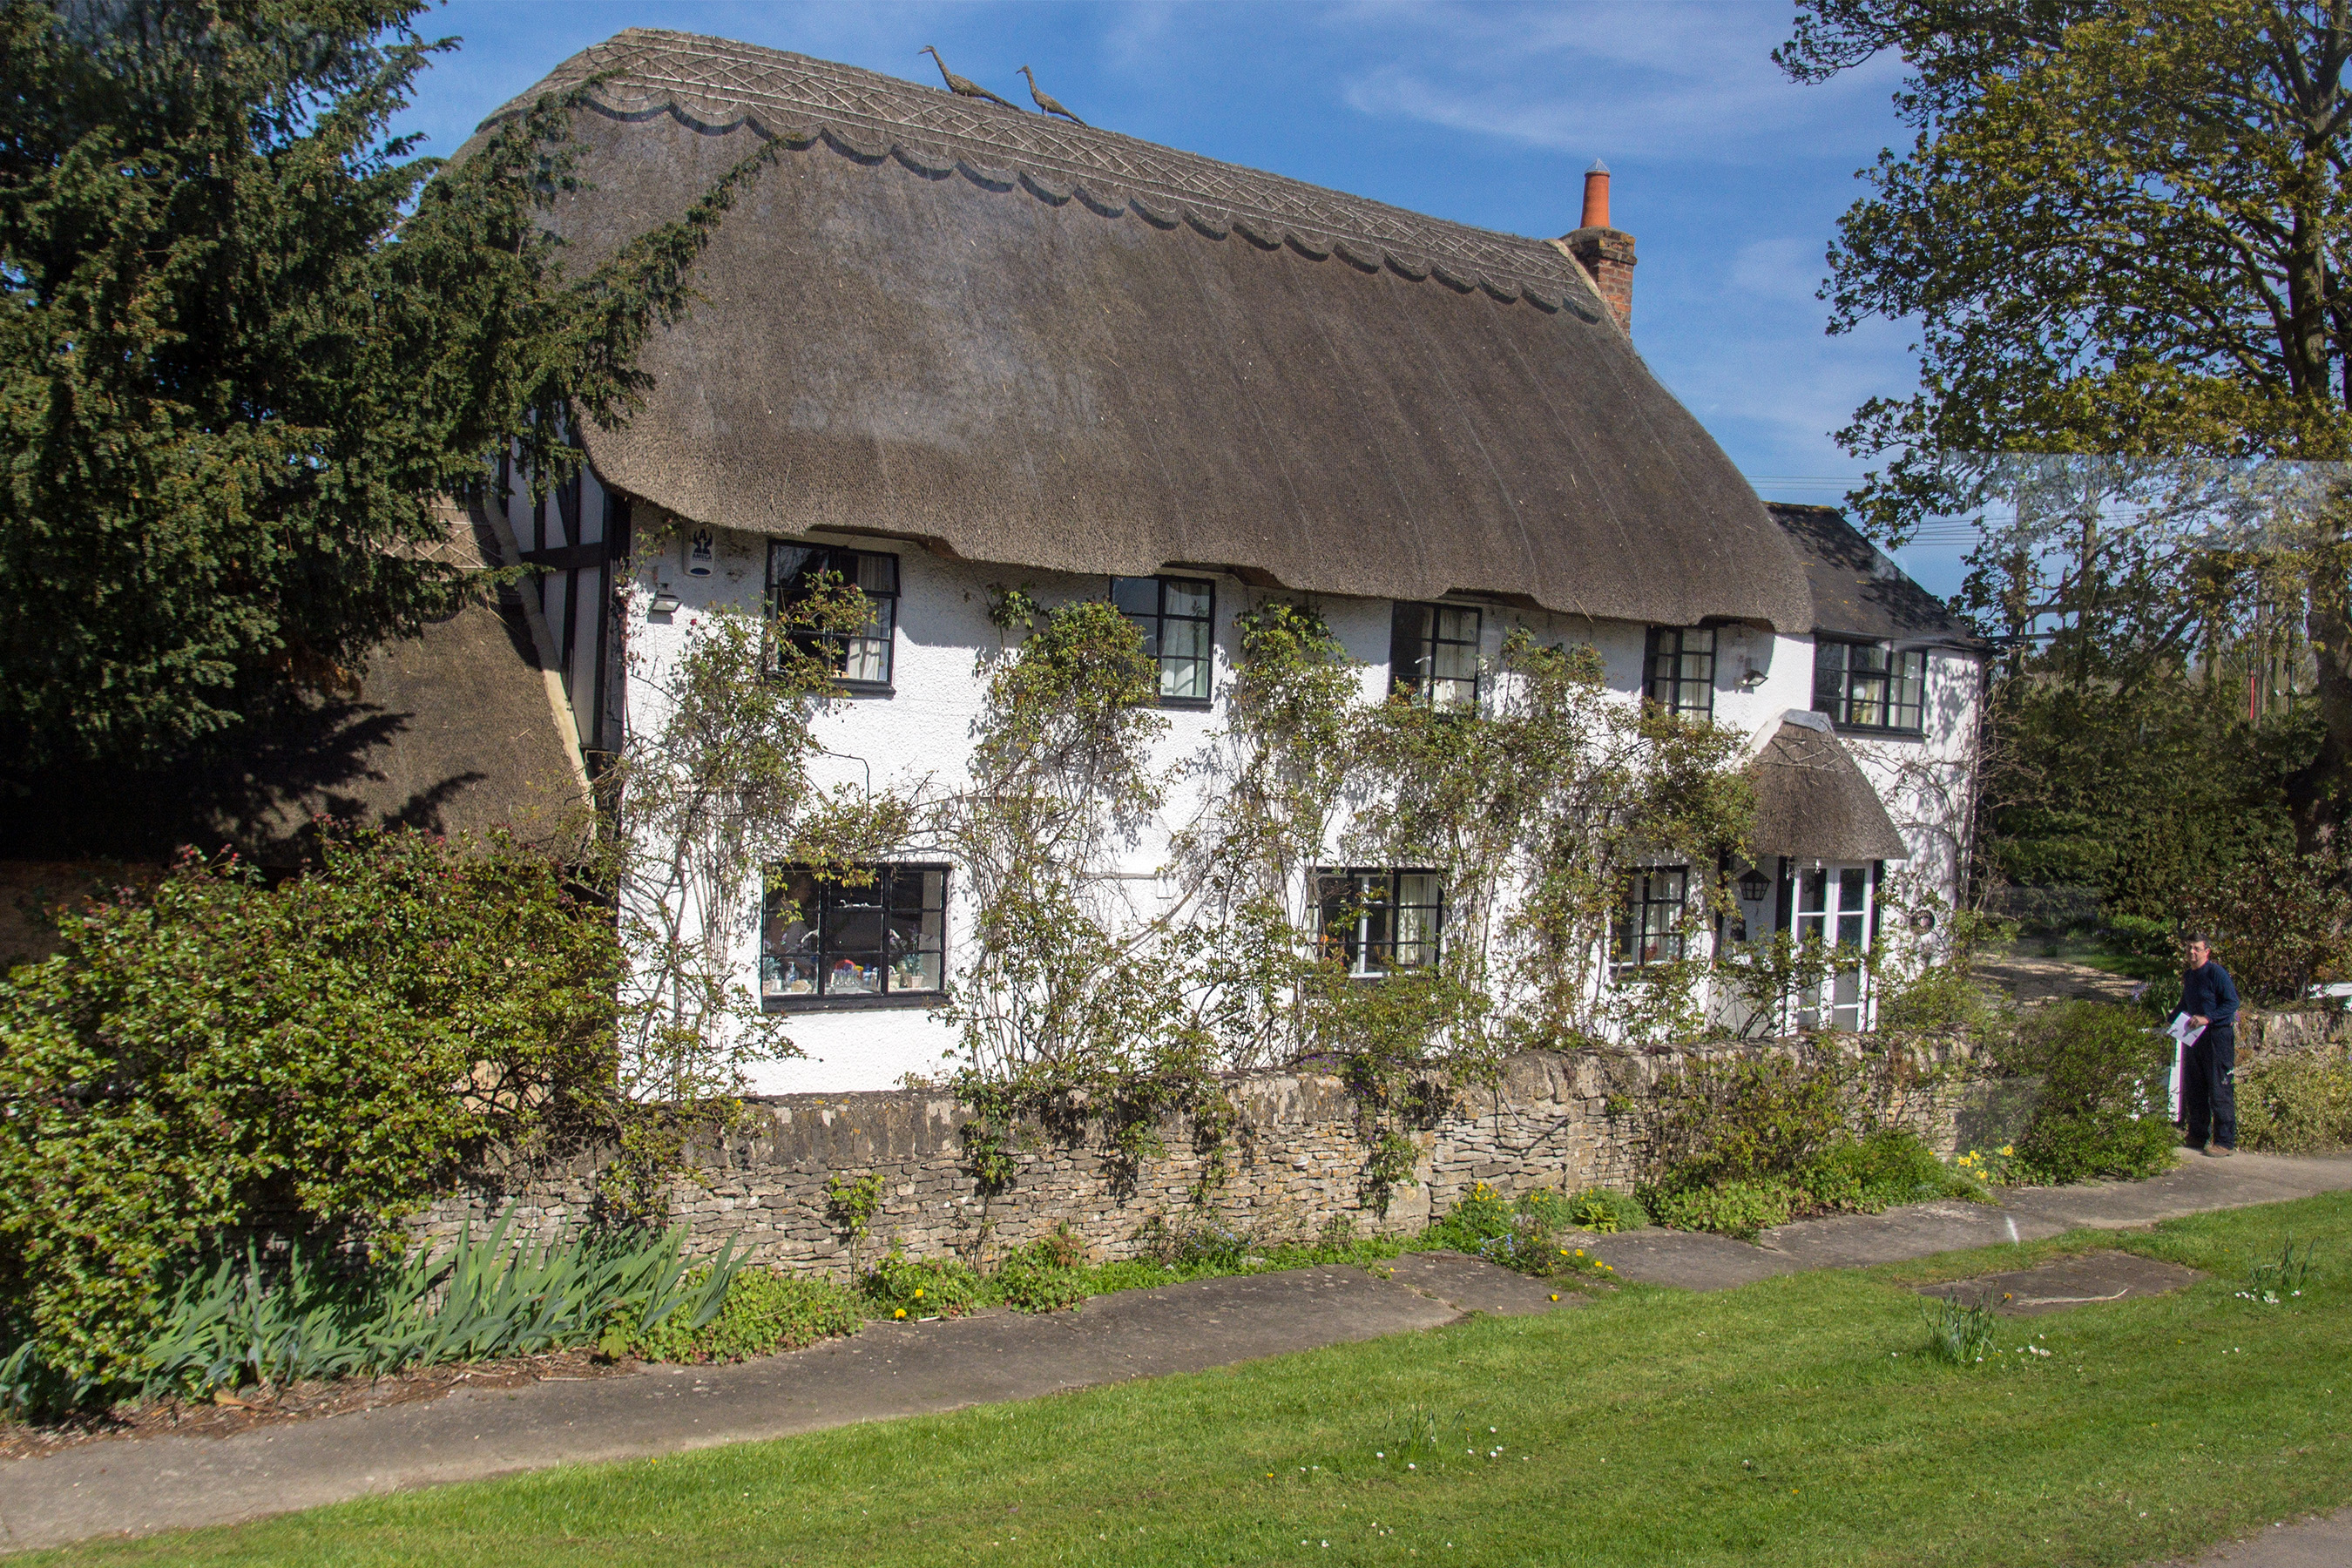 File thatched roof cottage cotswolds england 2016 jpg wikimedia commons - The thatched cottage ...